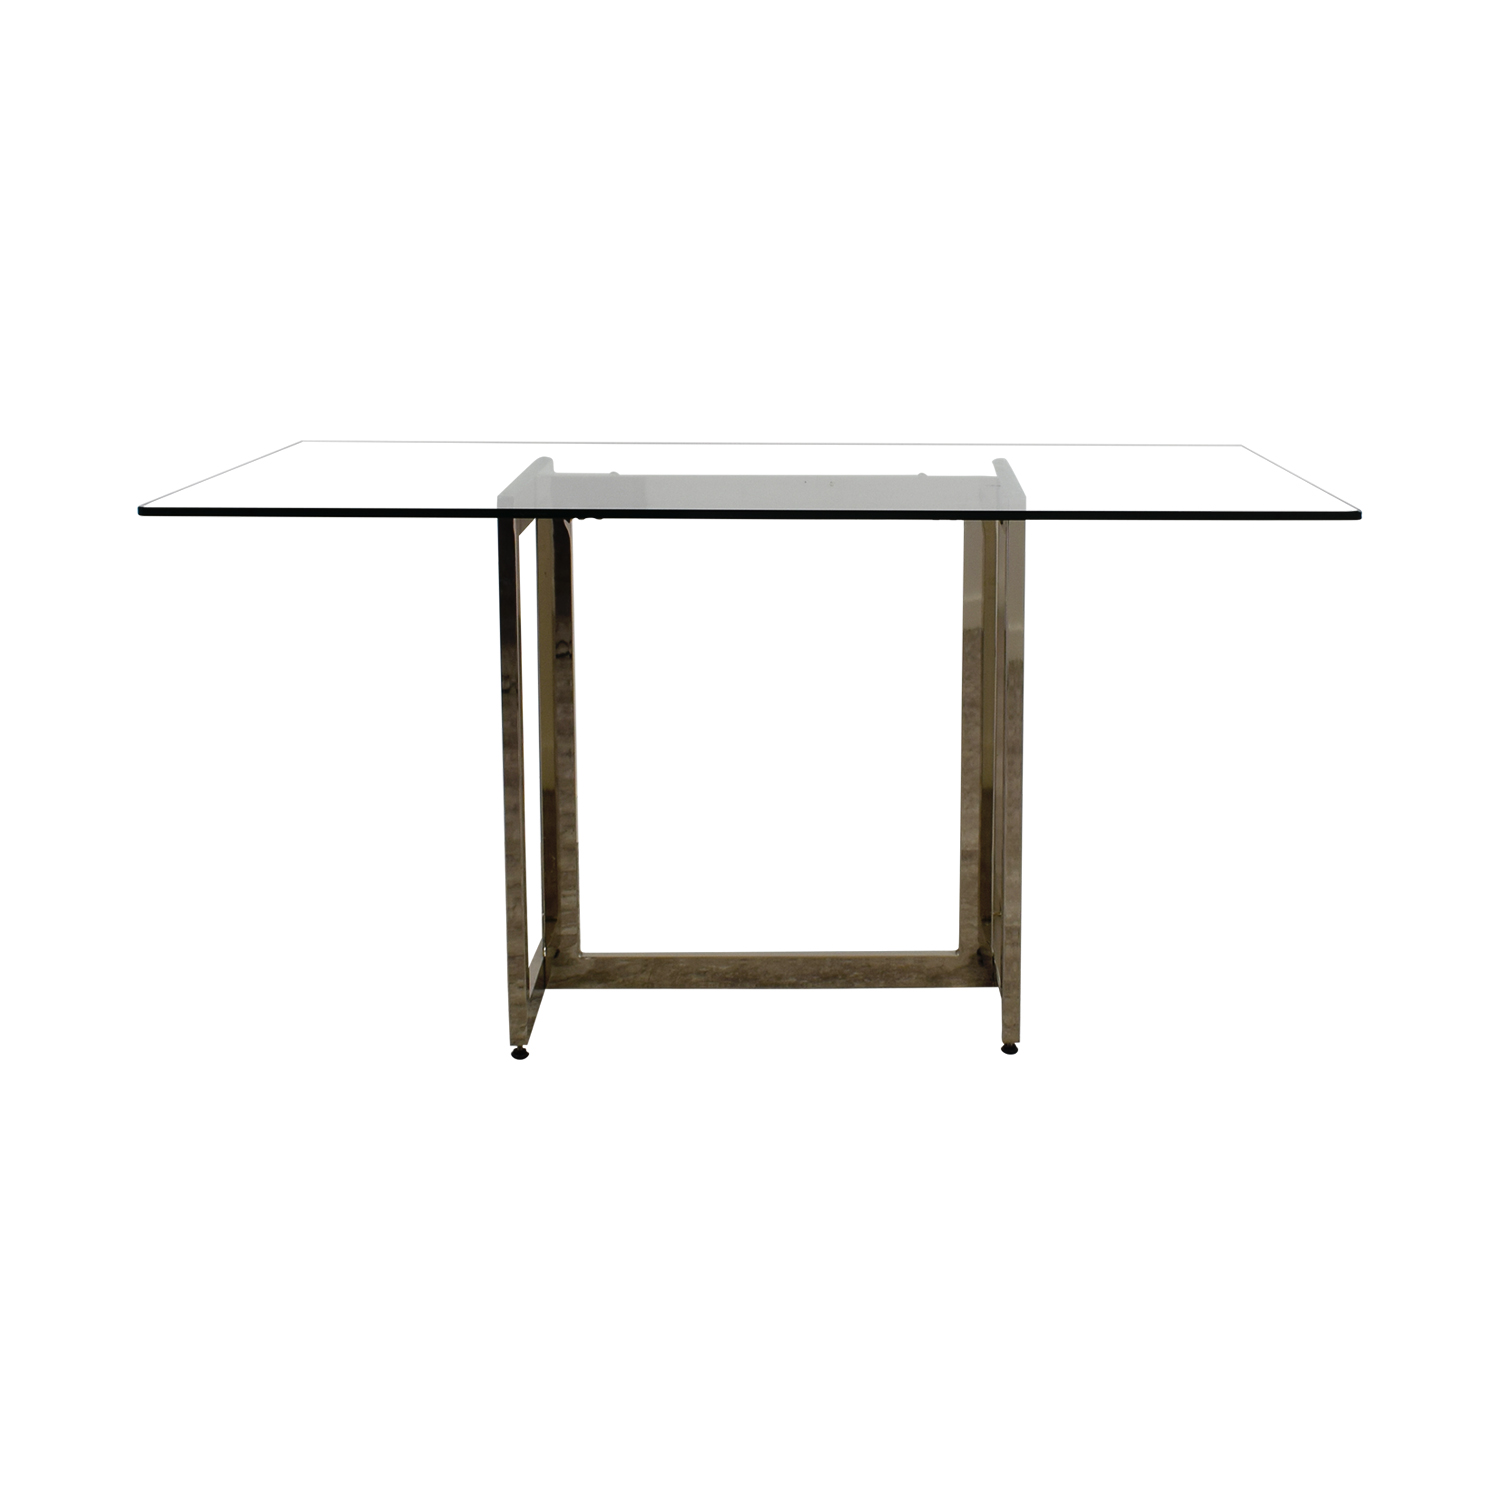 West Elm West Elm Rectangular Glass and Chrome Dining Table Dinner Tables